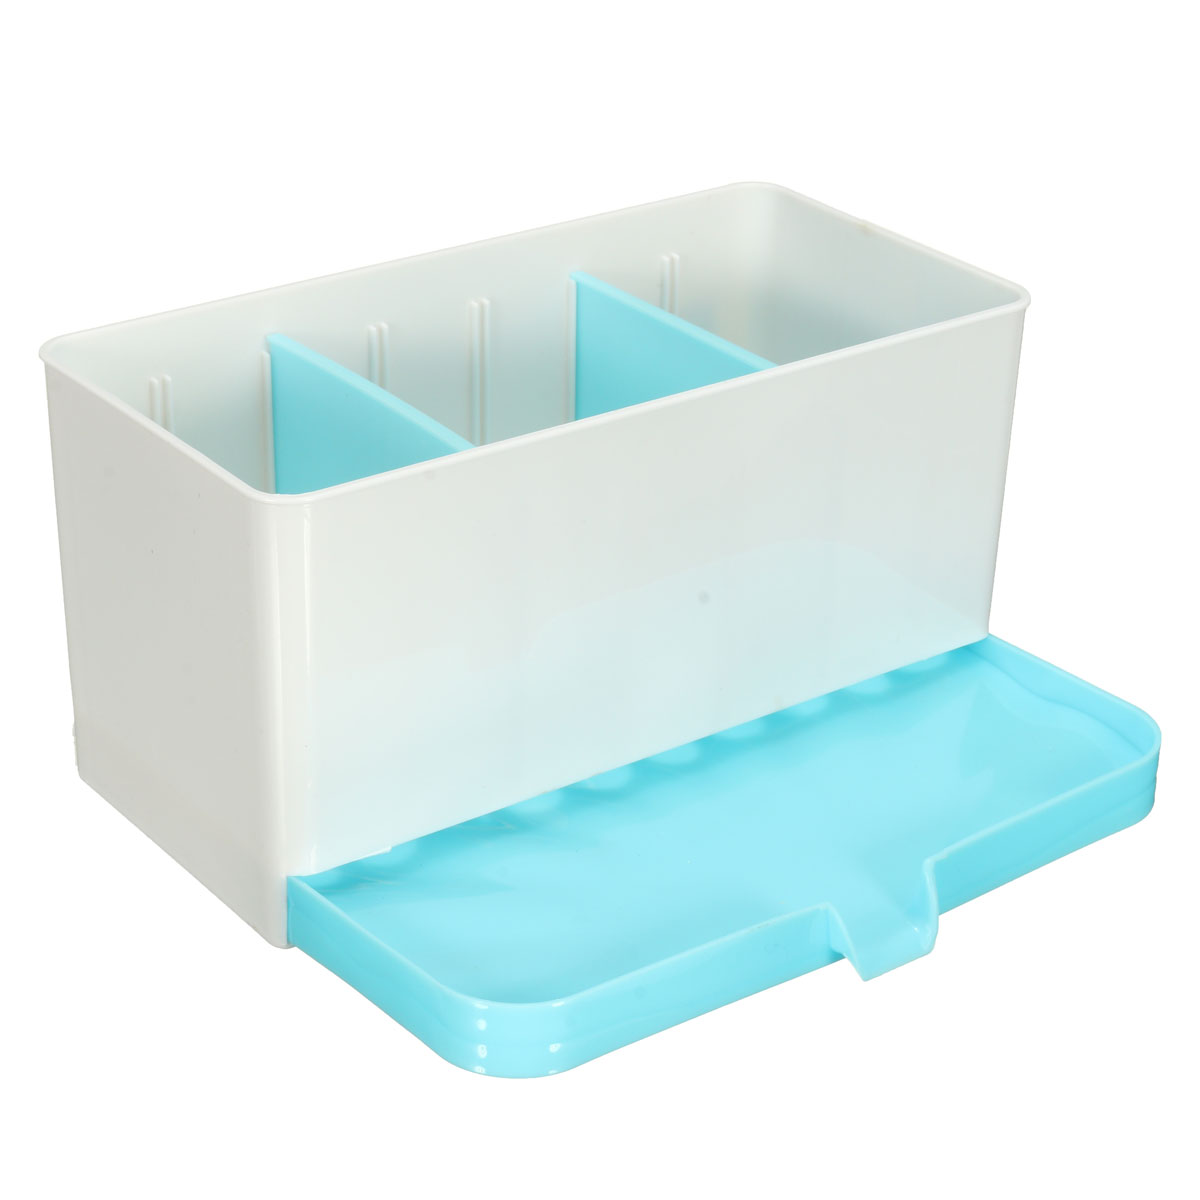 Kitchen Sink Basket Plastic Cup Base Utensils Sponge Storage ...